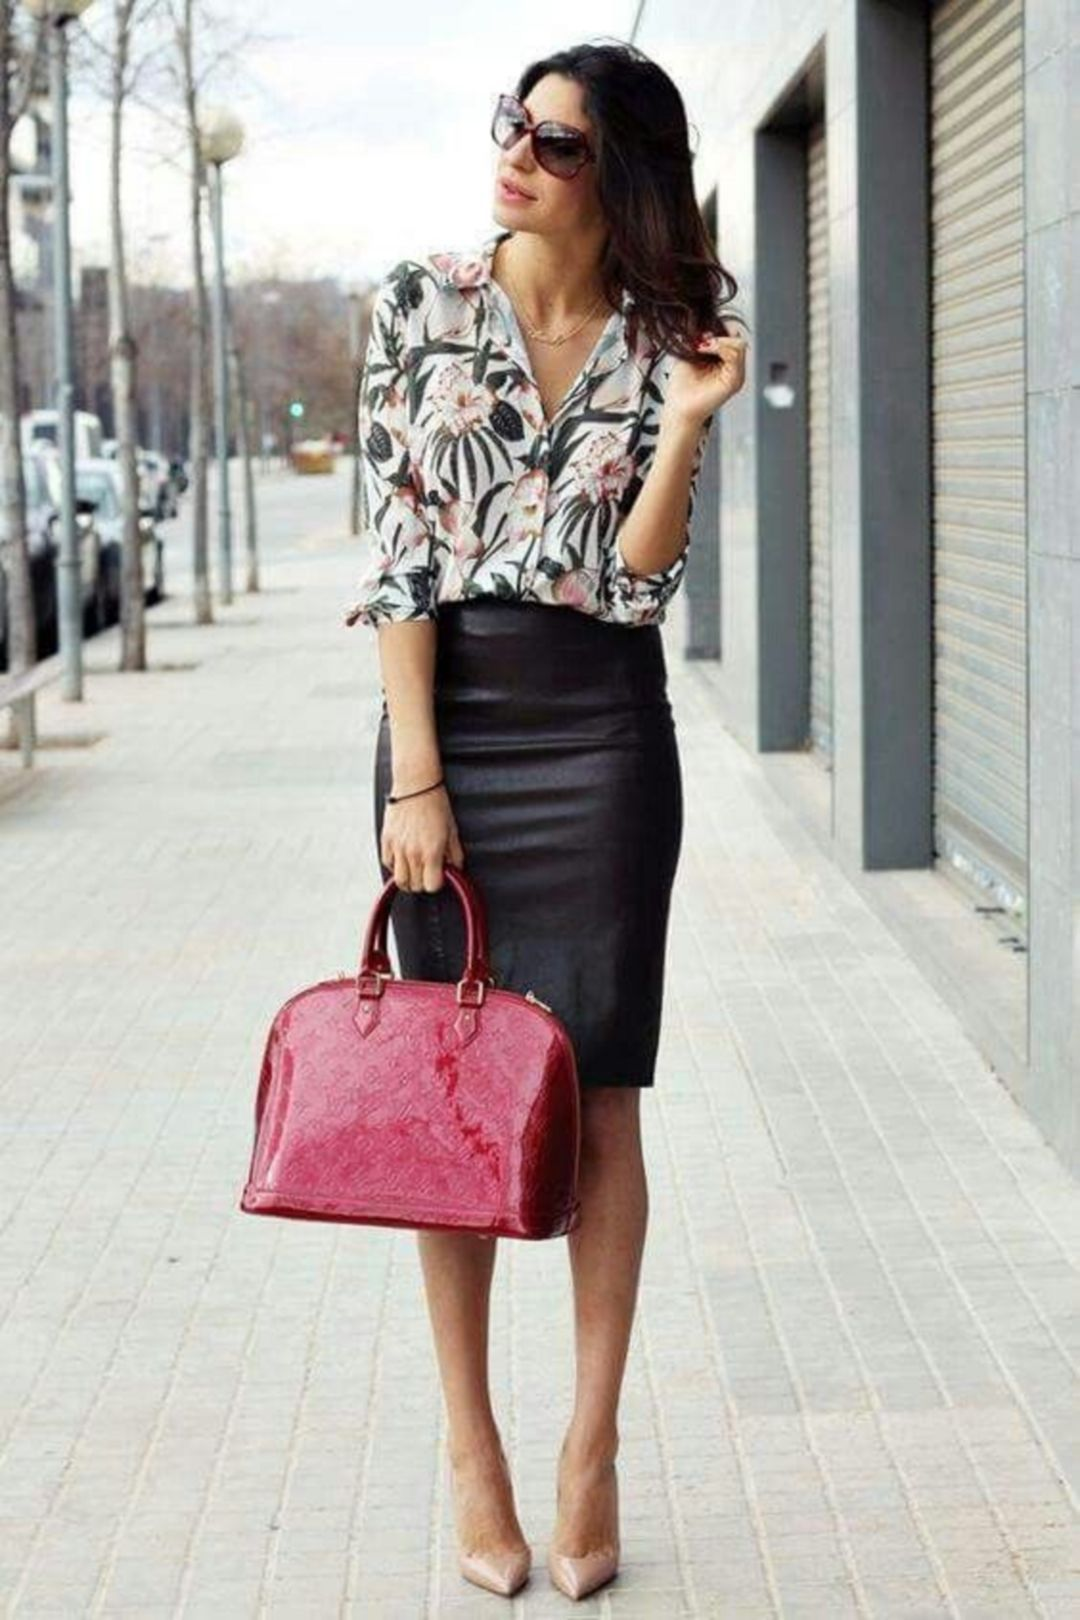 40 Fashionable Work Outfit Ideas For Women To Looks More Elegant Fashions Nowadays Skirt Outfits Modest Fashionable Work Outfit Work Fashion [ 1620 x 1080 Pixel ]